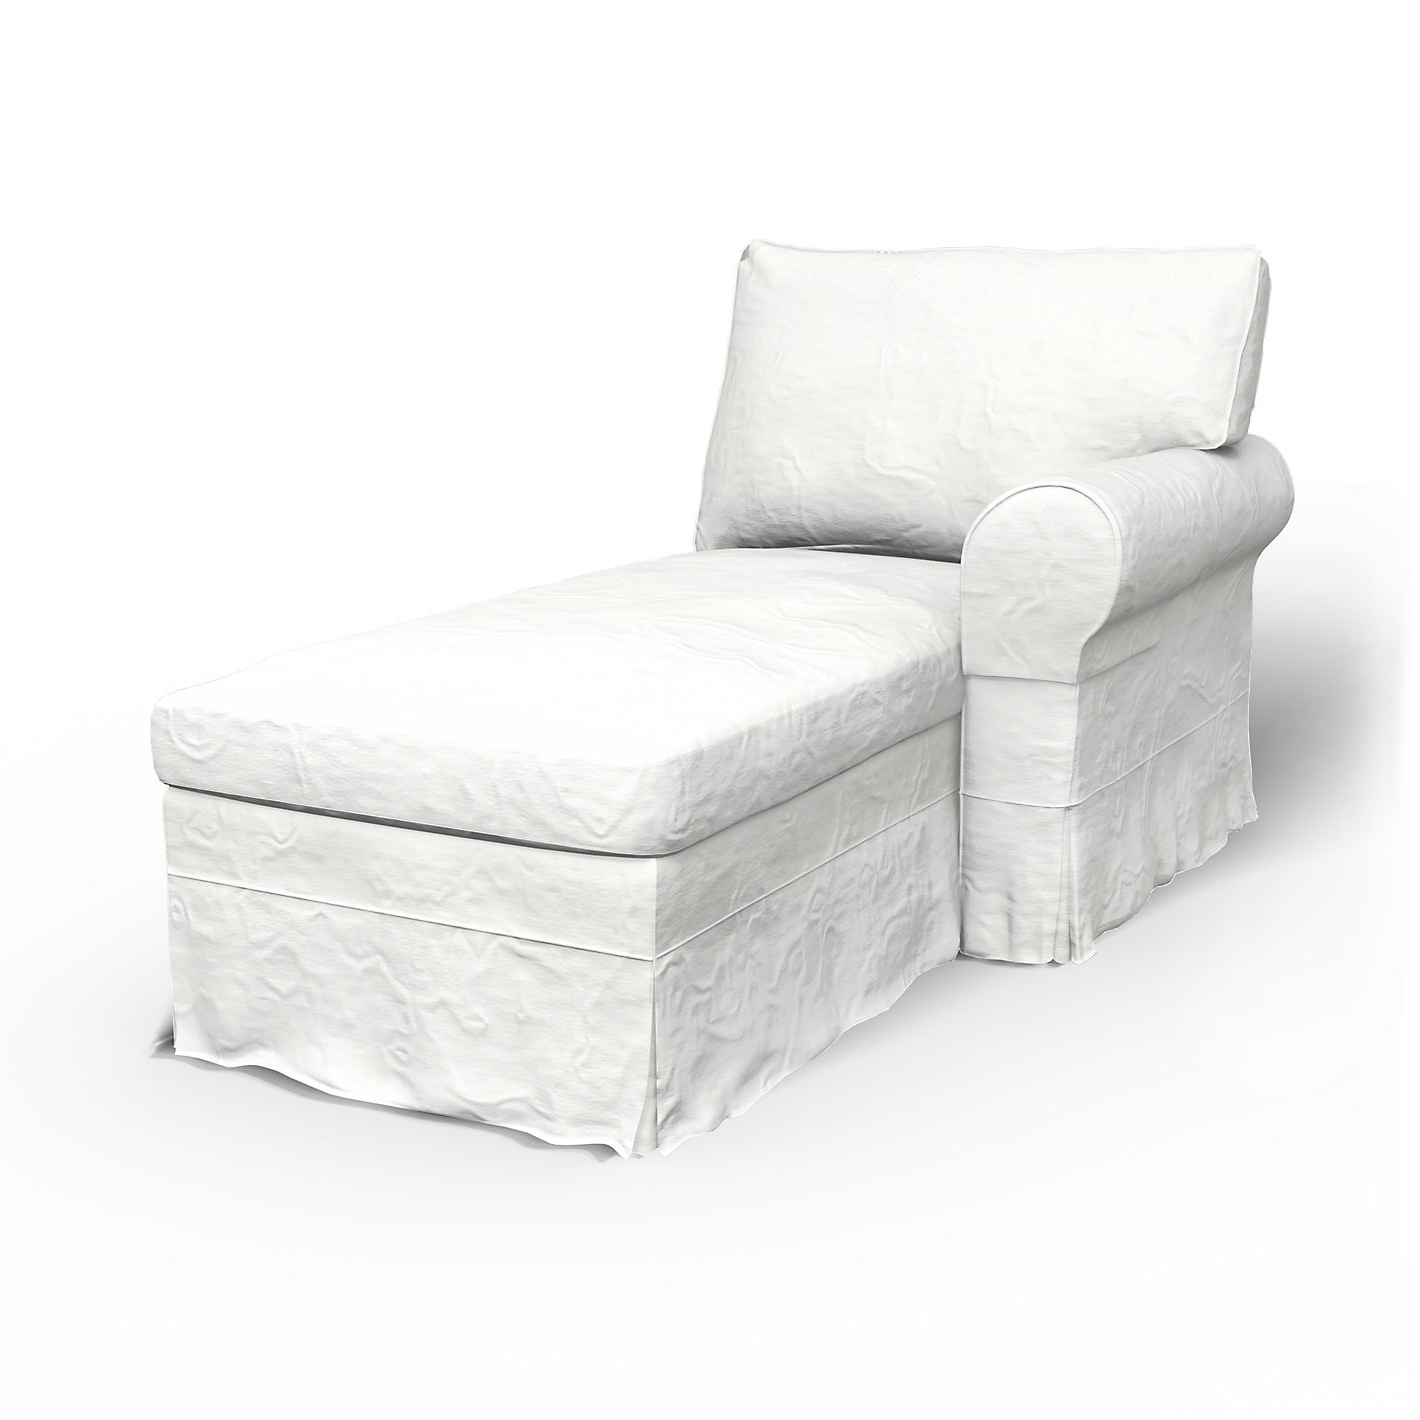 Cover For Chaise Lounge Chair • Lounge Chairs Ideas Pertaining To Popular Chaise Lounge Chairs With Arms Slipcover (View 13 of 15)